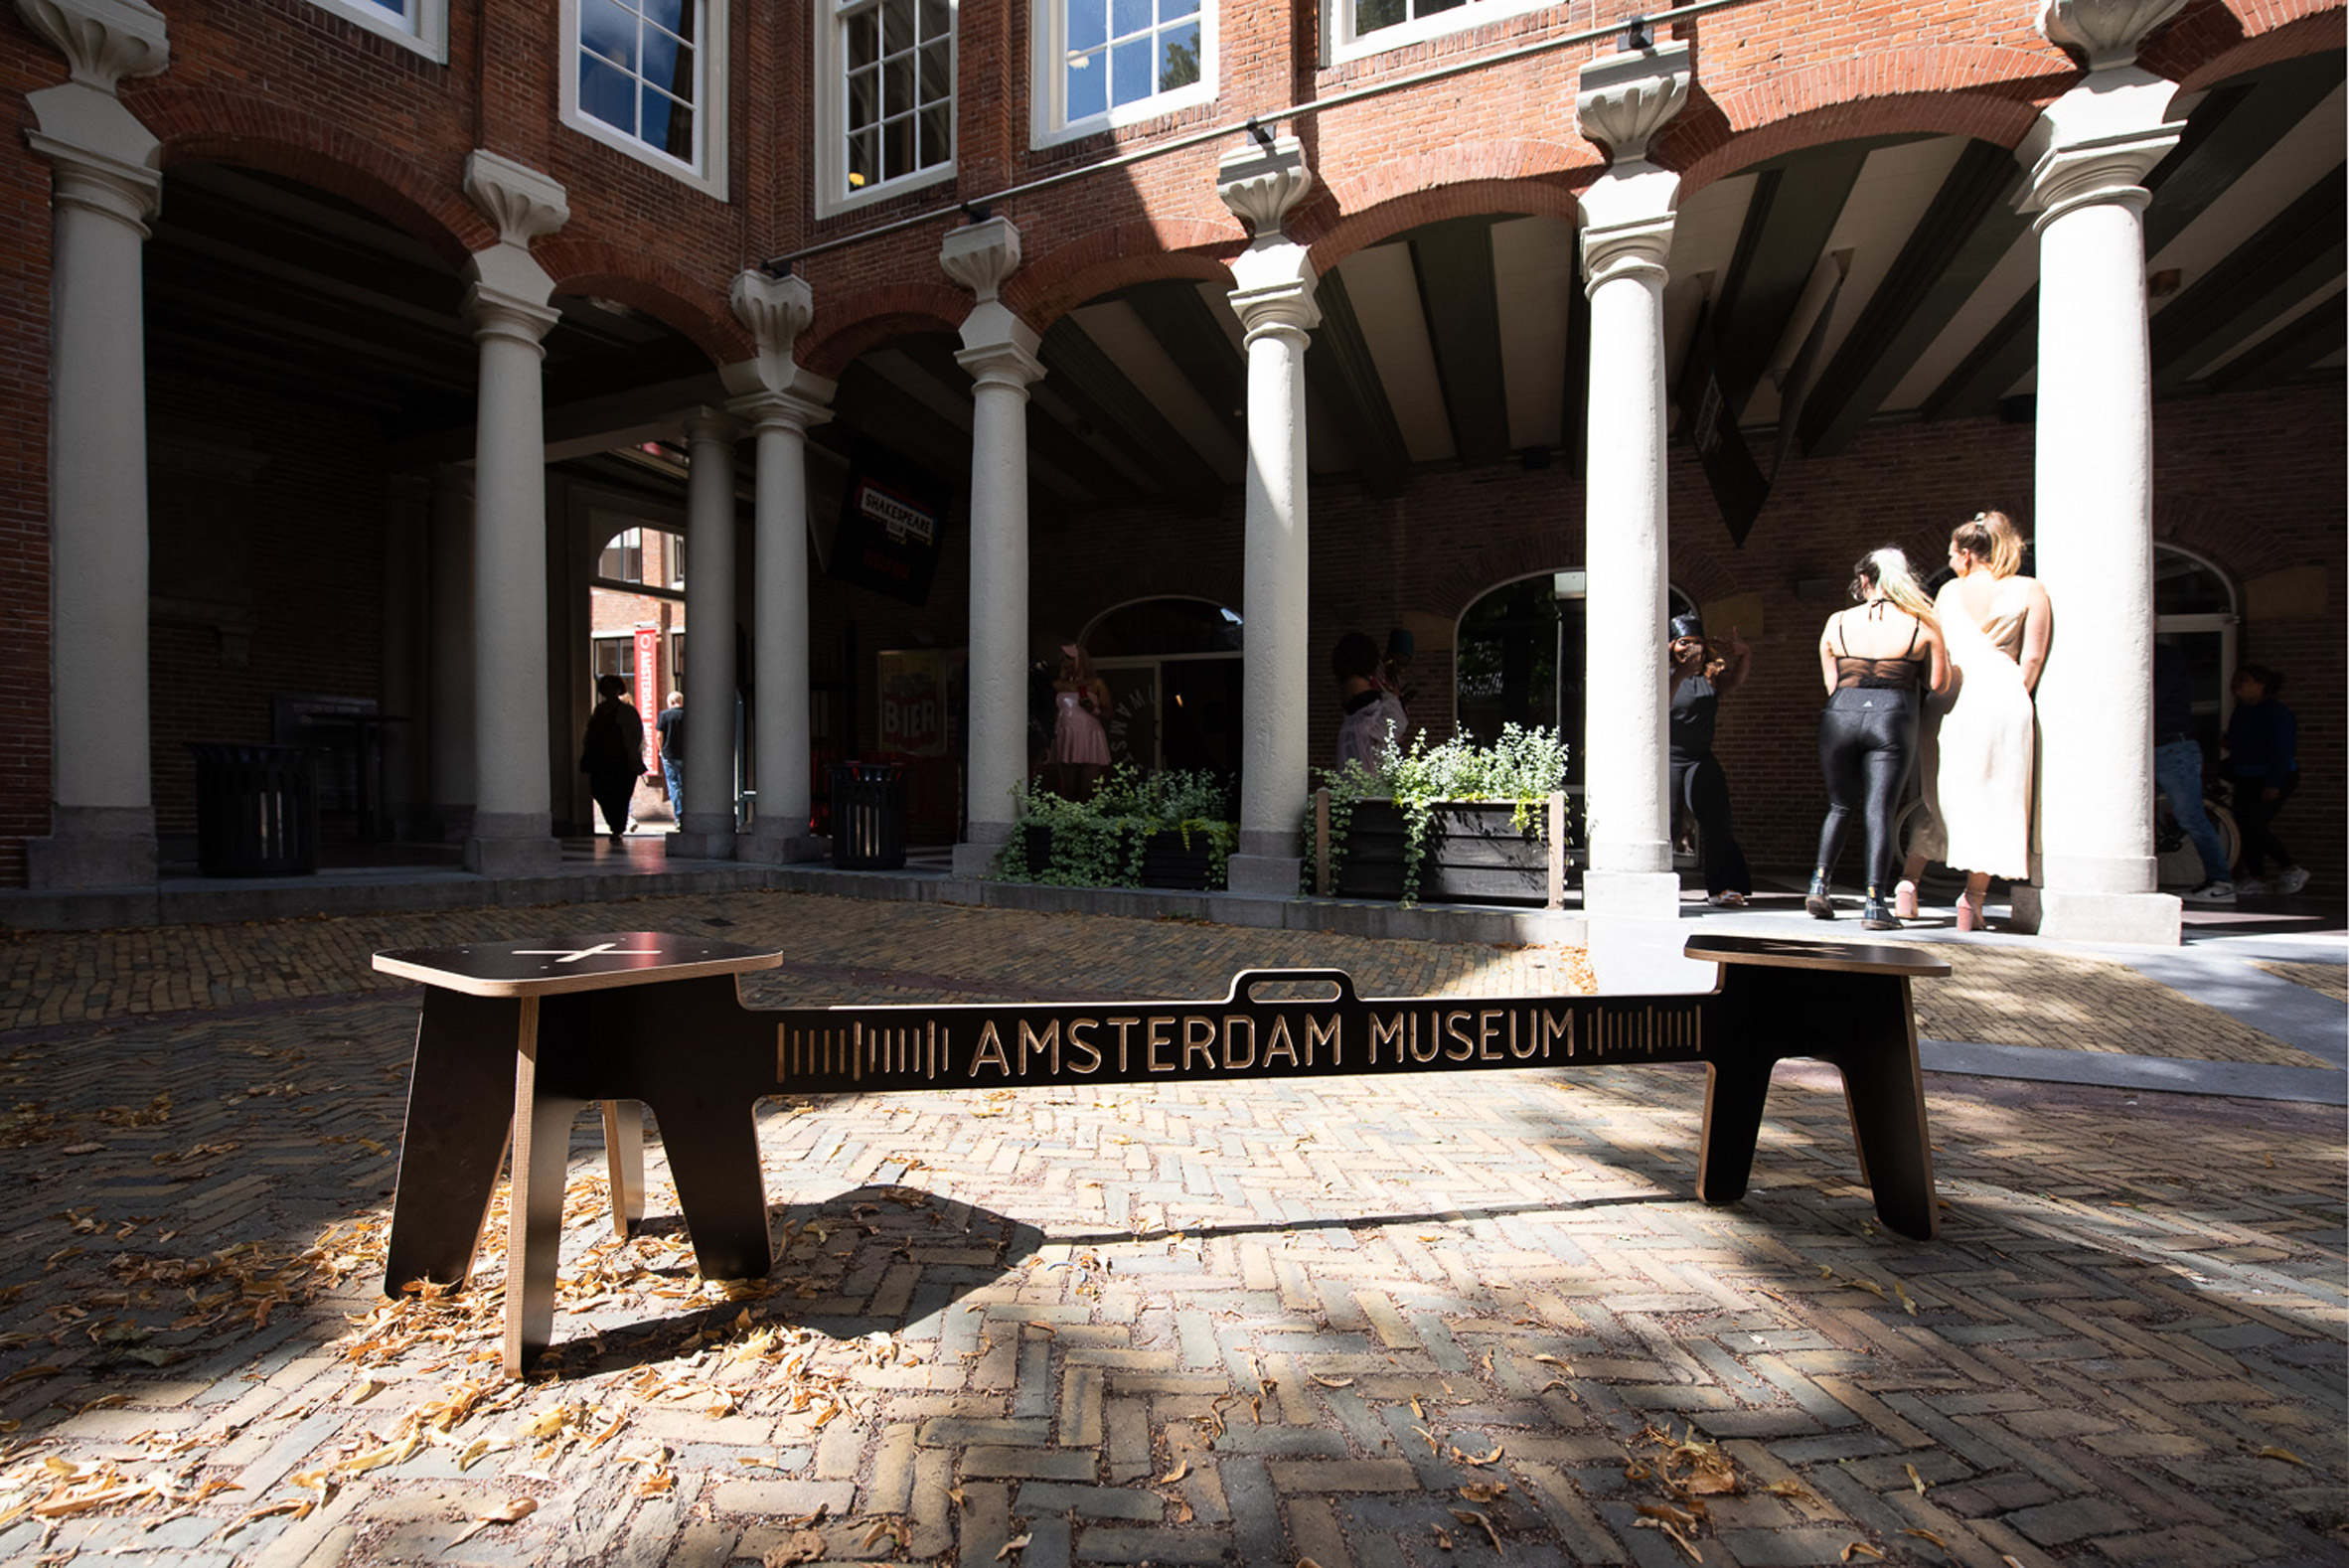 Corona Crisis Kruk, a social distancing bench by Object Studio, displayed outside a museum